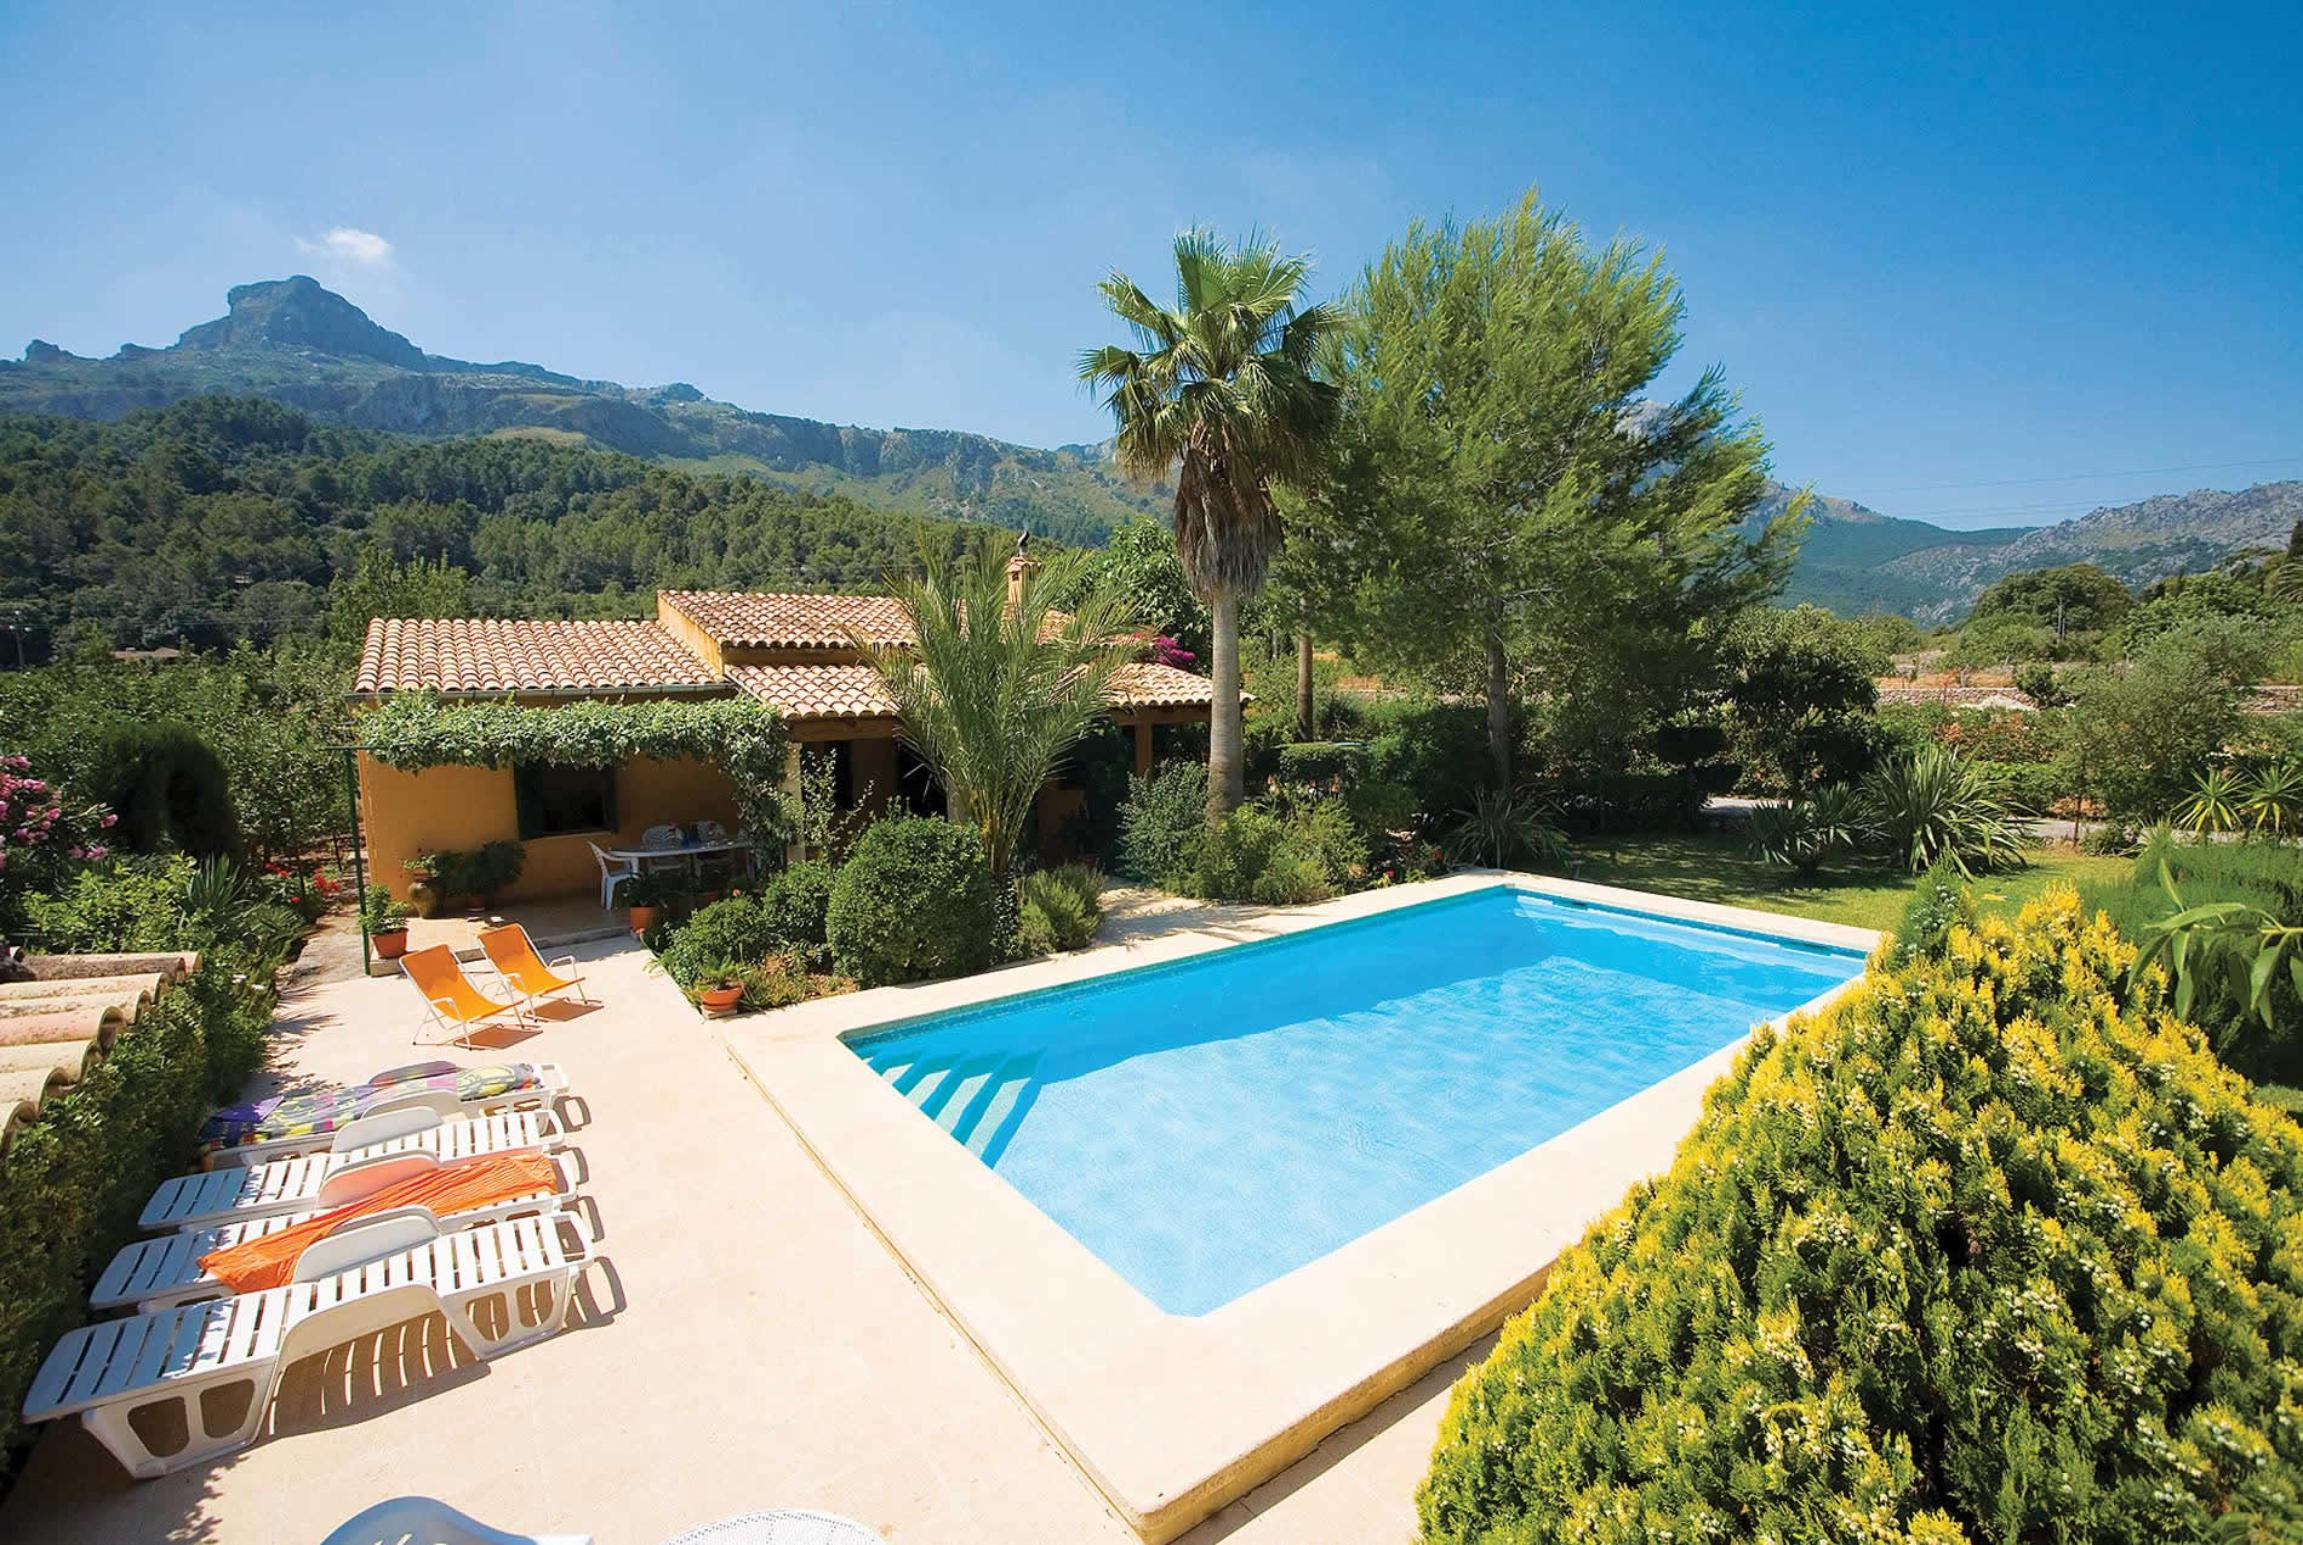 Read more about La Plana villa